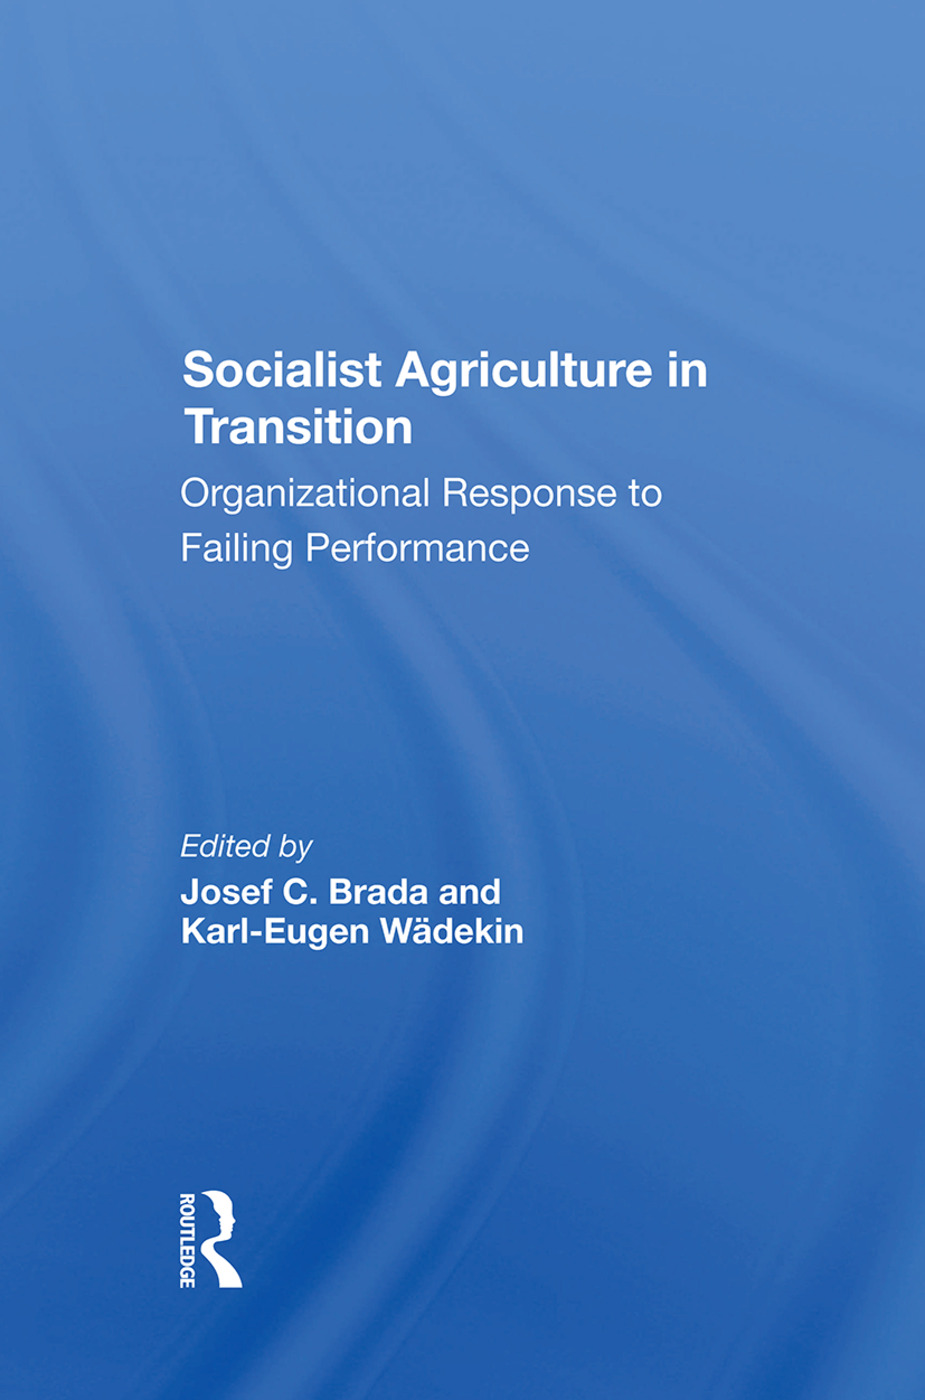 Rural Infrastructure in the Soviet Union: Roads and Other Priorities